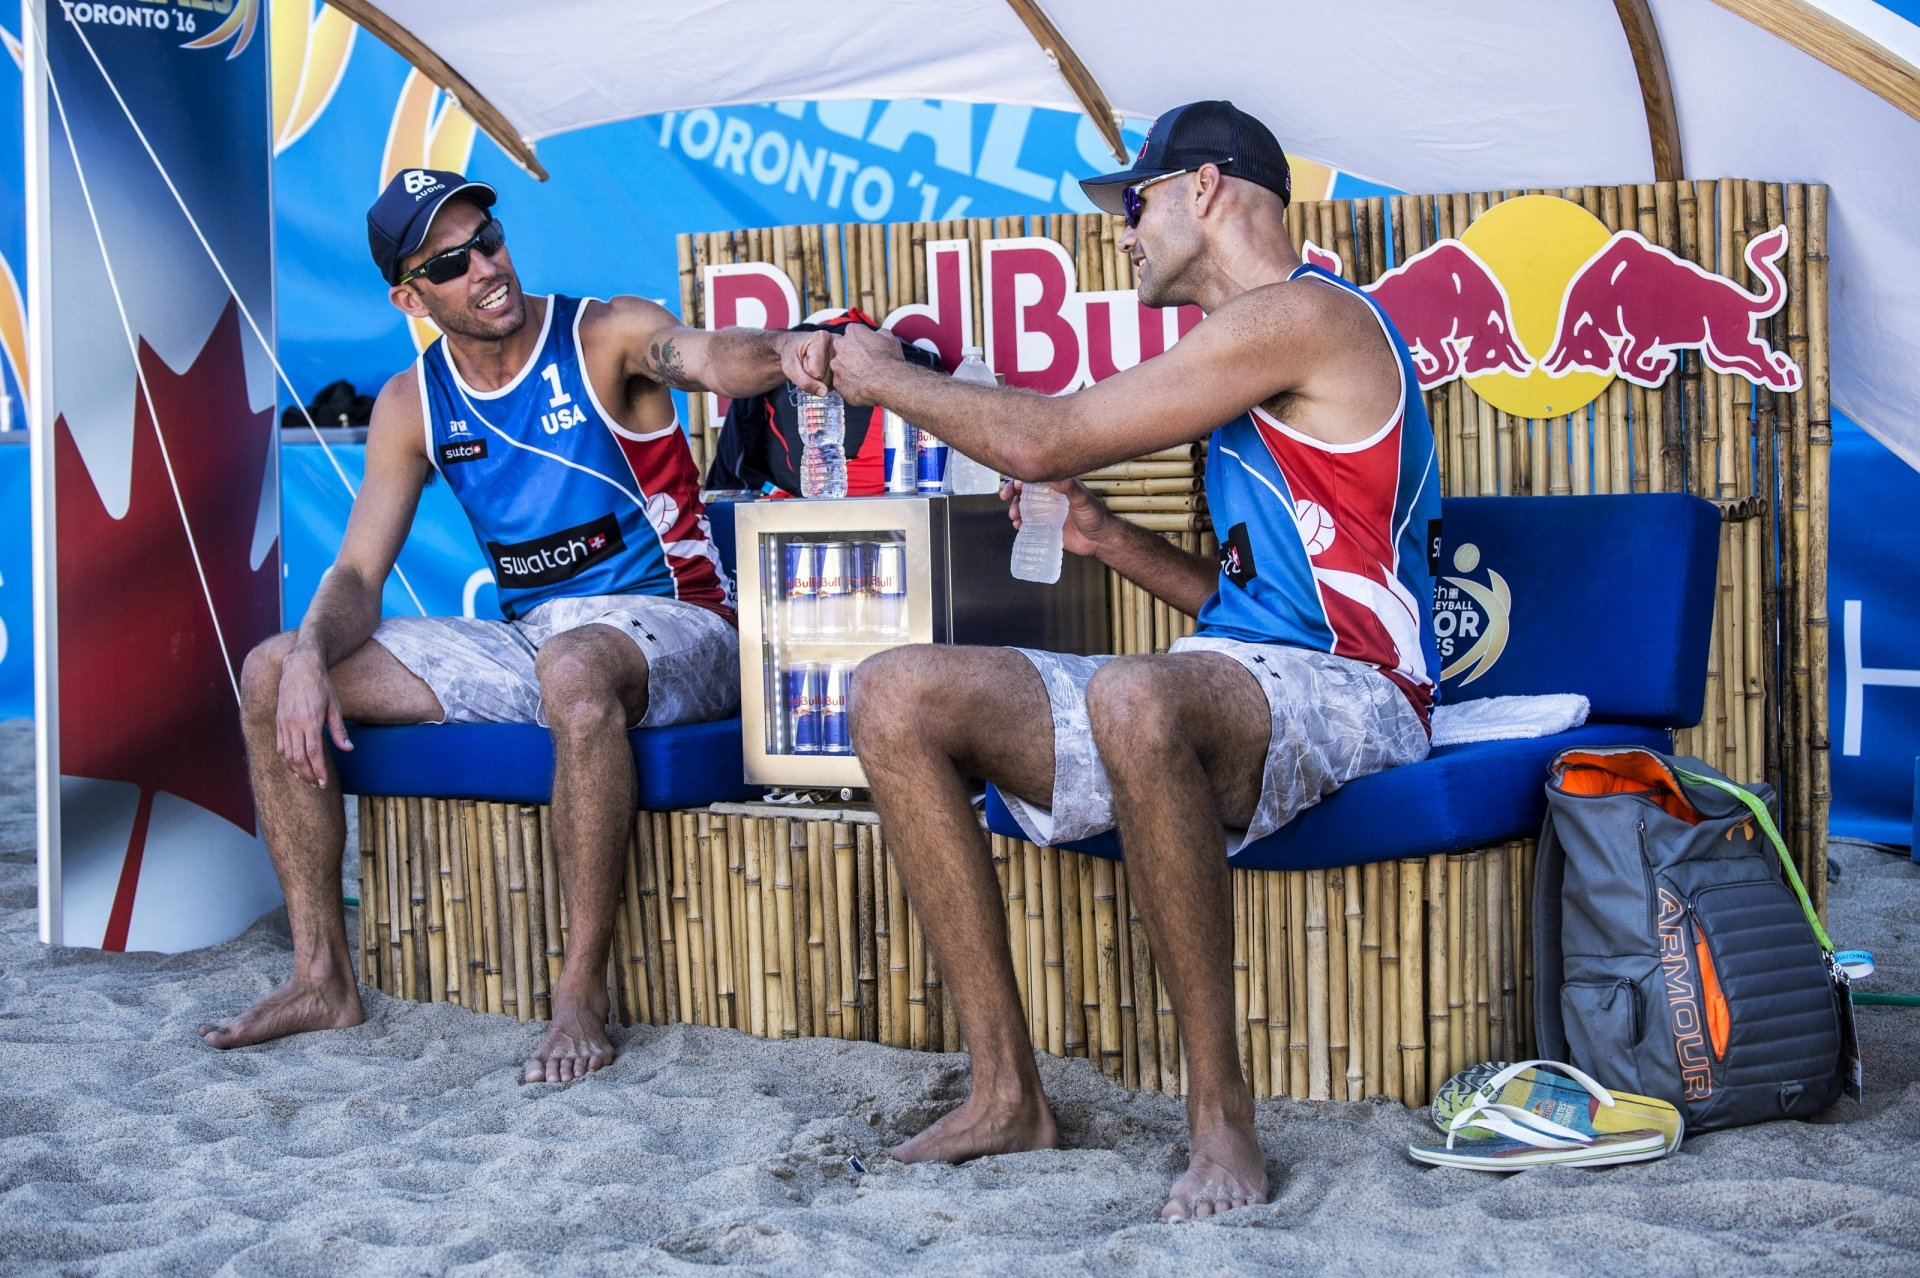 Americans Nick Lucena (left) and Phil Dalhausser (right)